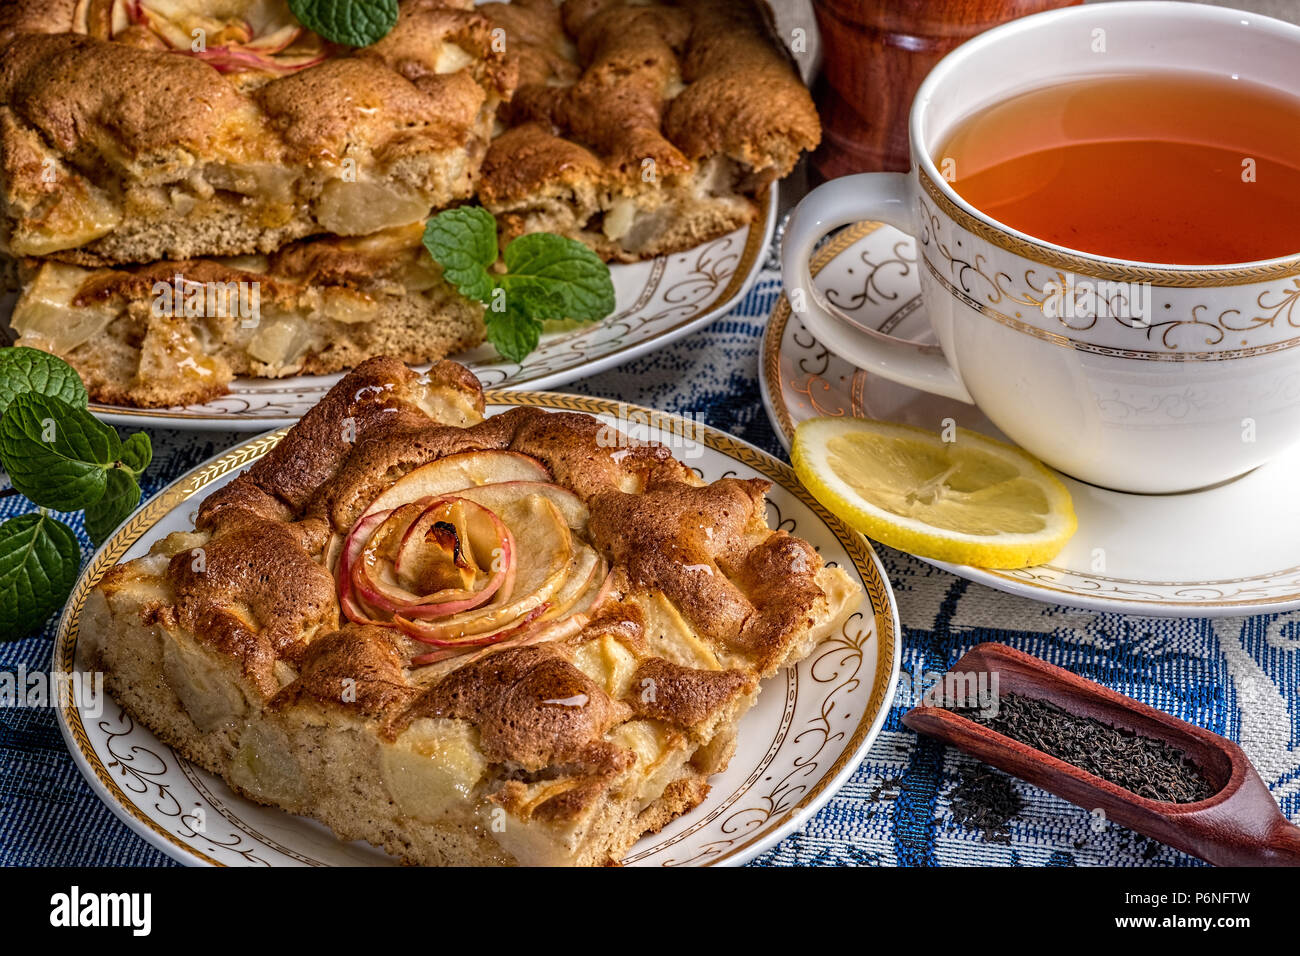 Delicious Warm Apple Pie On Plate With Cap Of Tea A Piece Of Cake